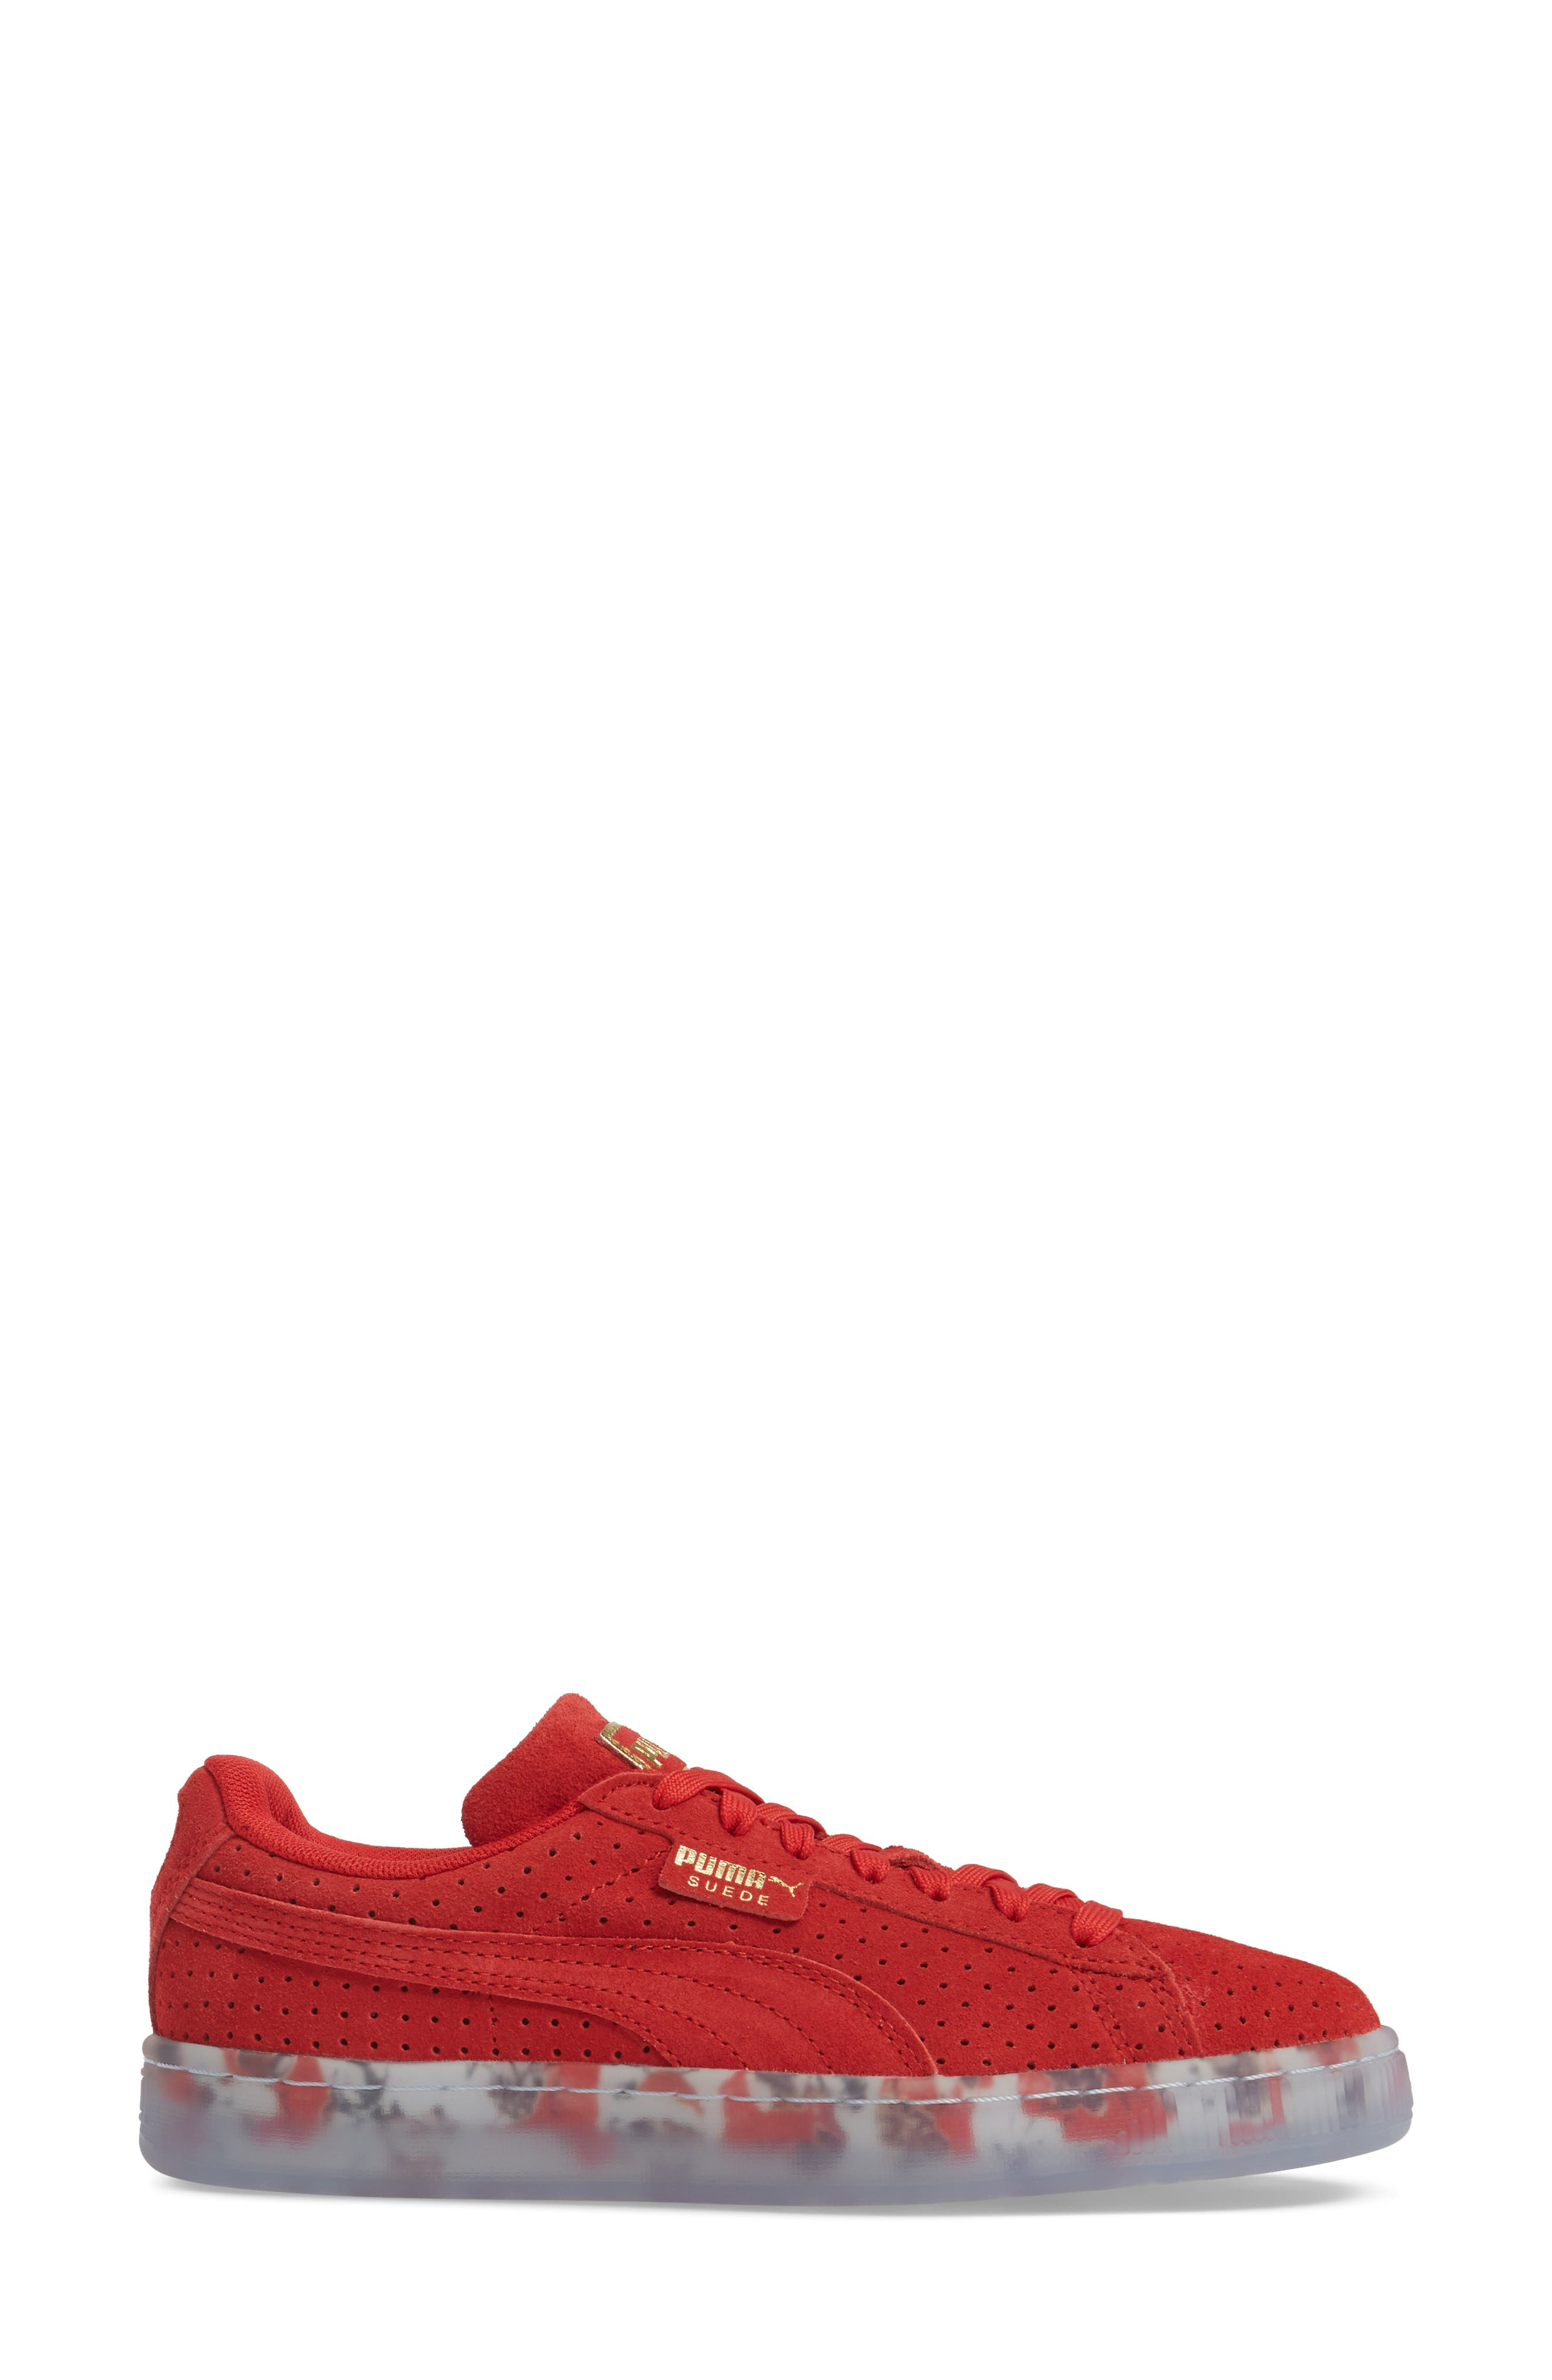 Suede Classic Perforated Sneaker,                             Alternate thumbnail 3, color,                             High Risk Red/ Puma White